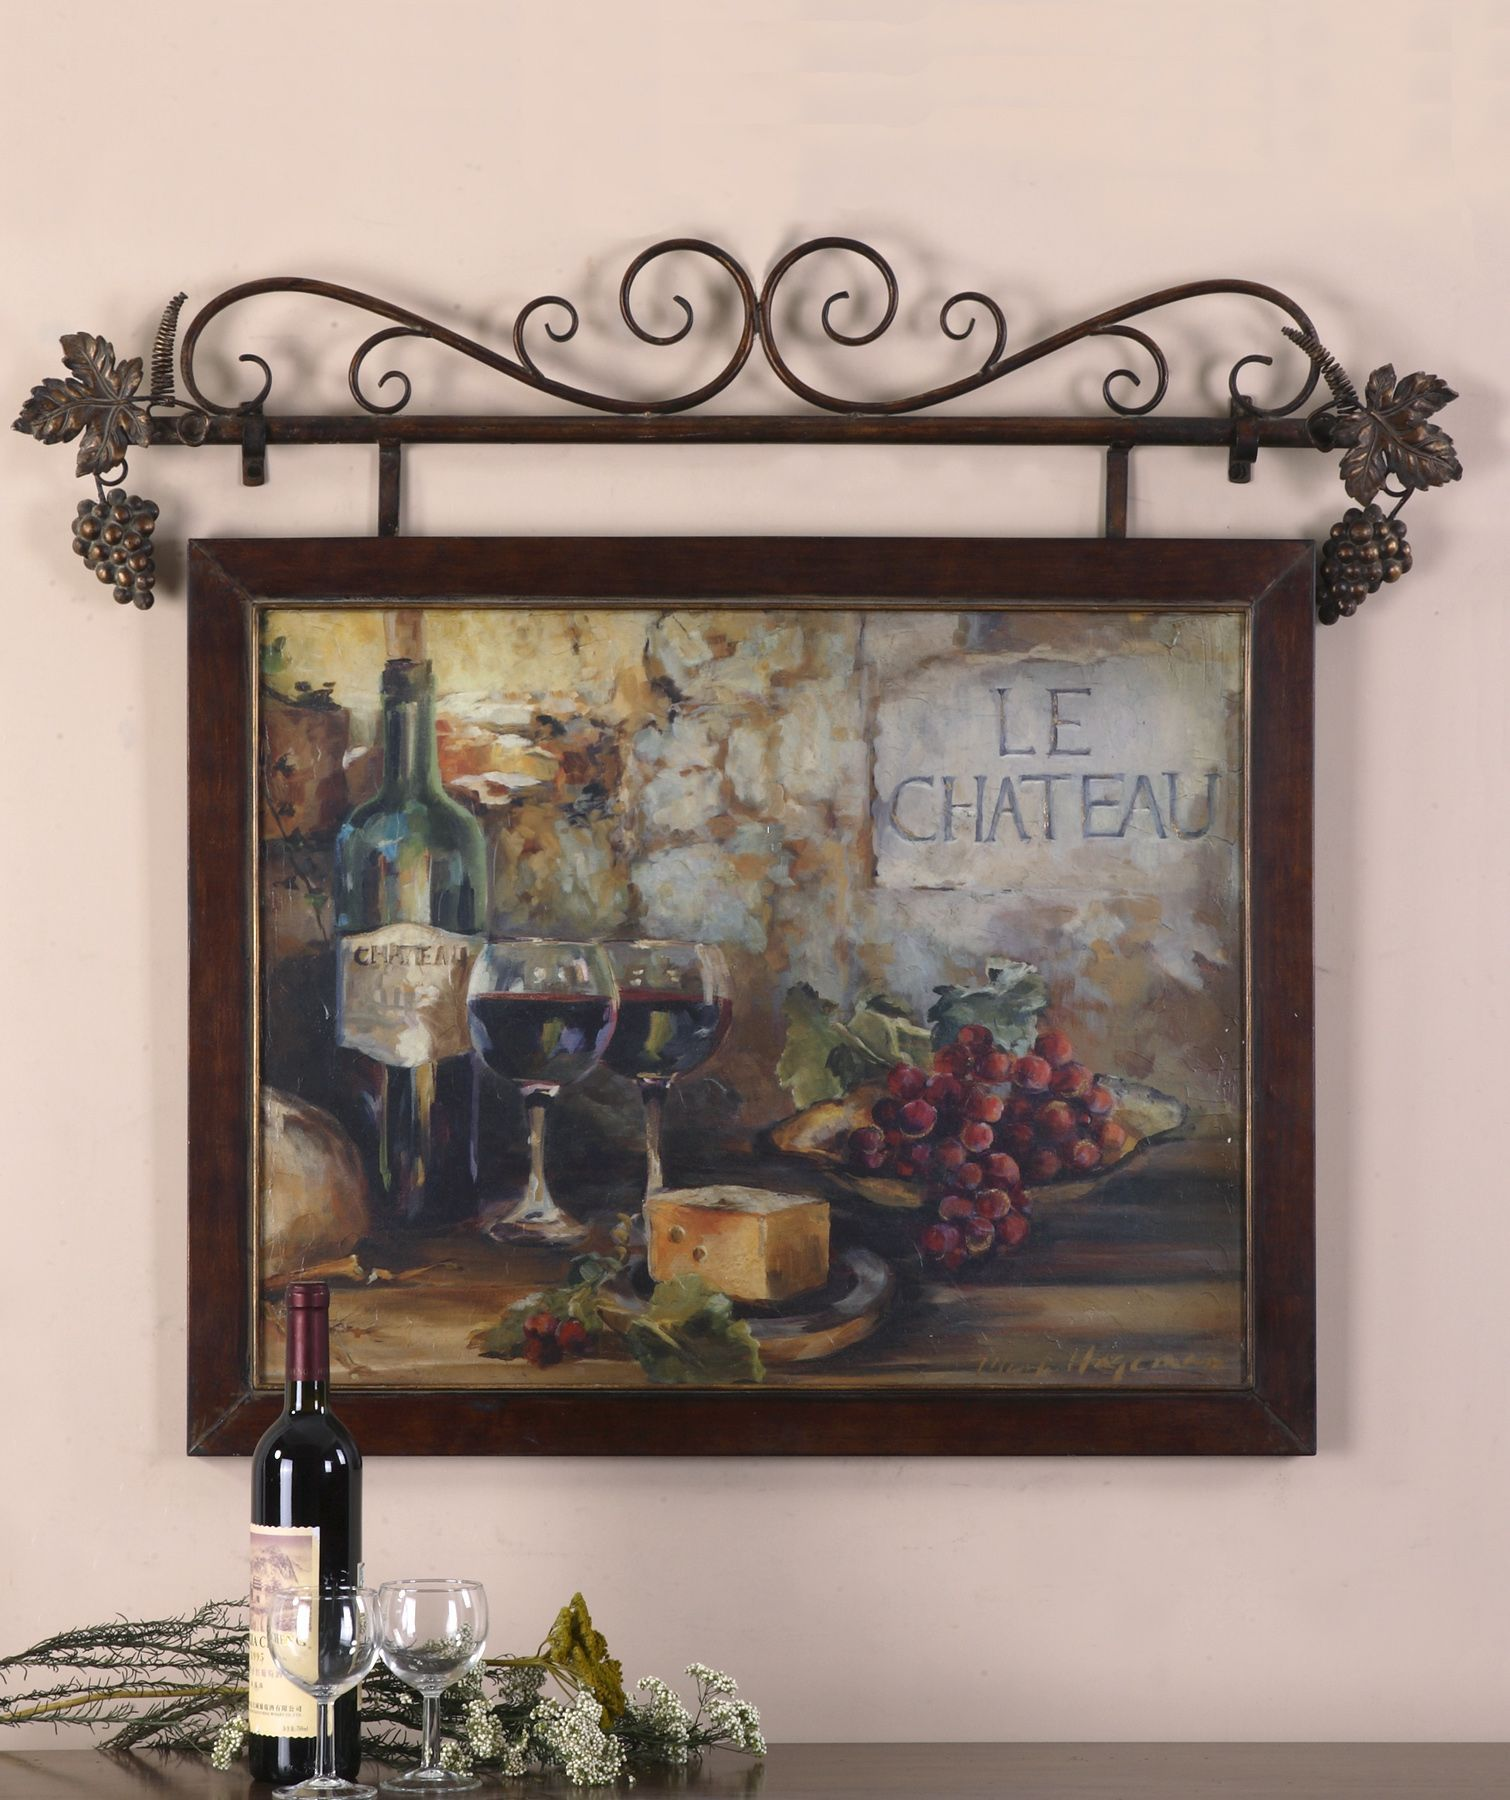 Uttermost le chateau framed art uttermost pinterest